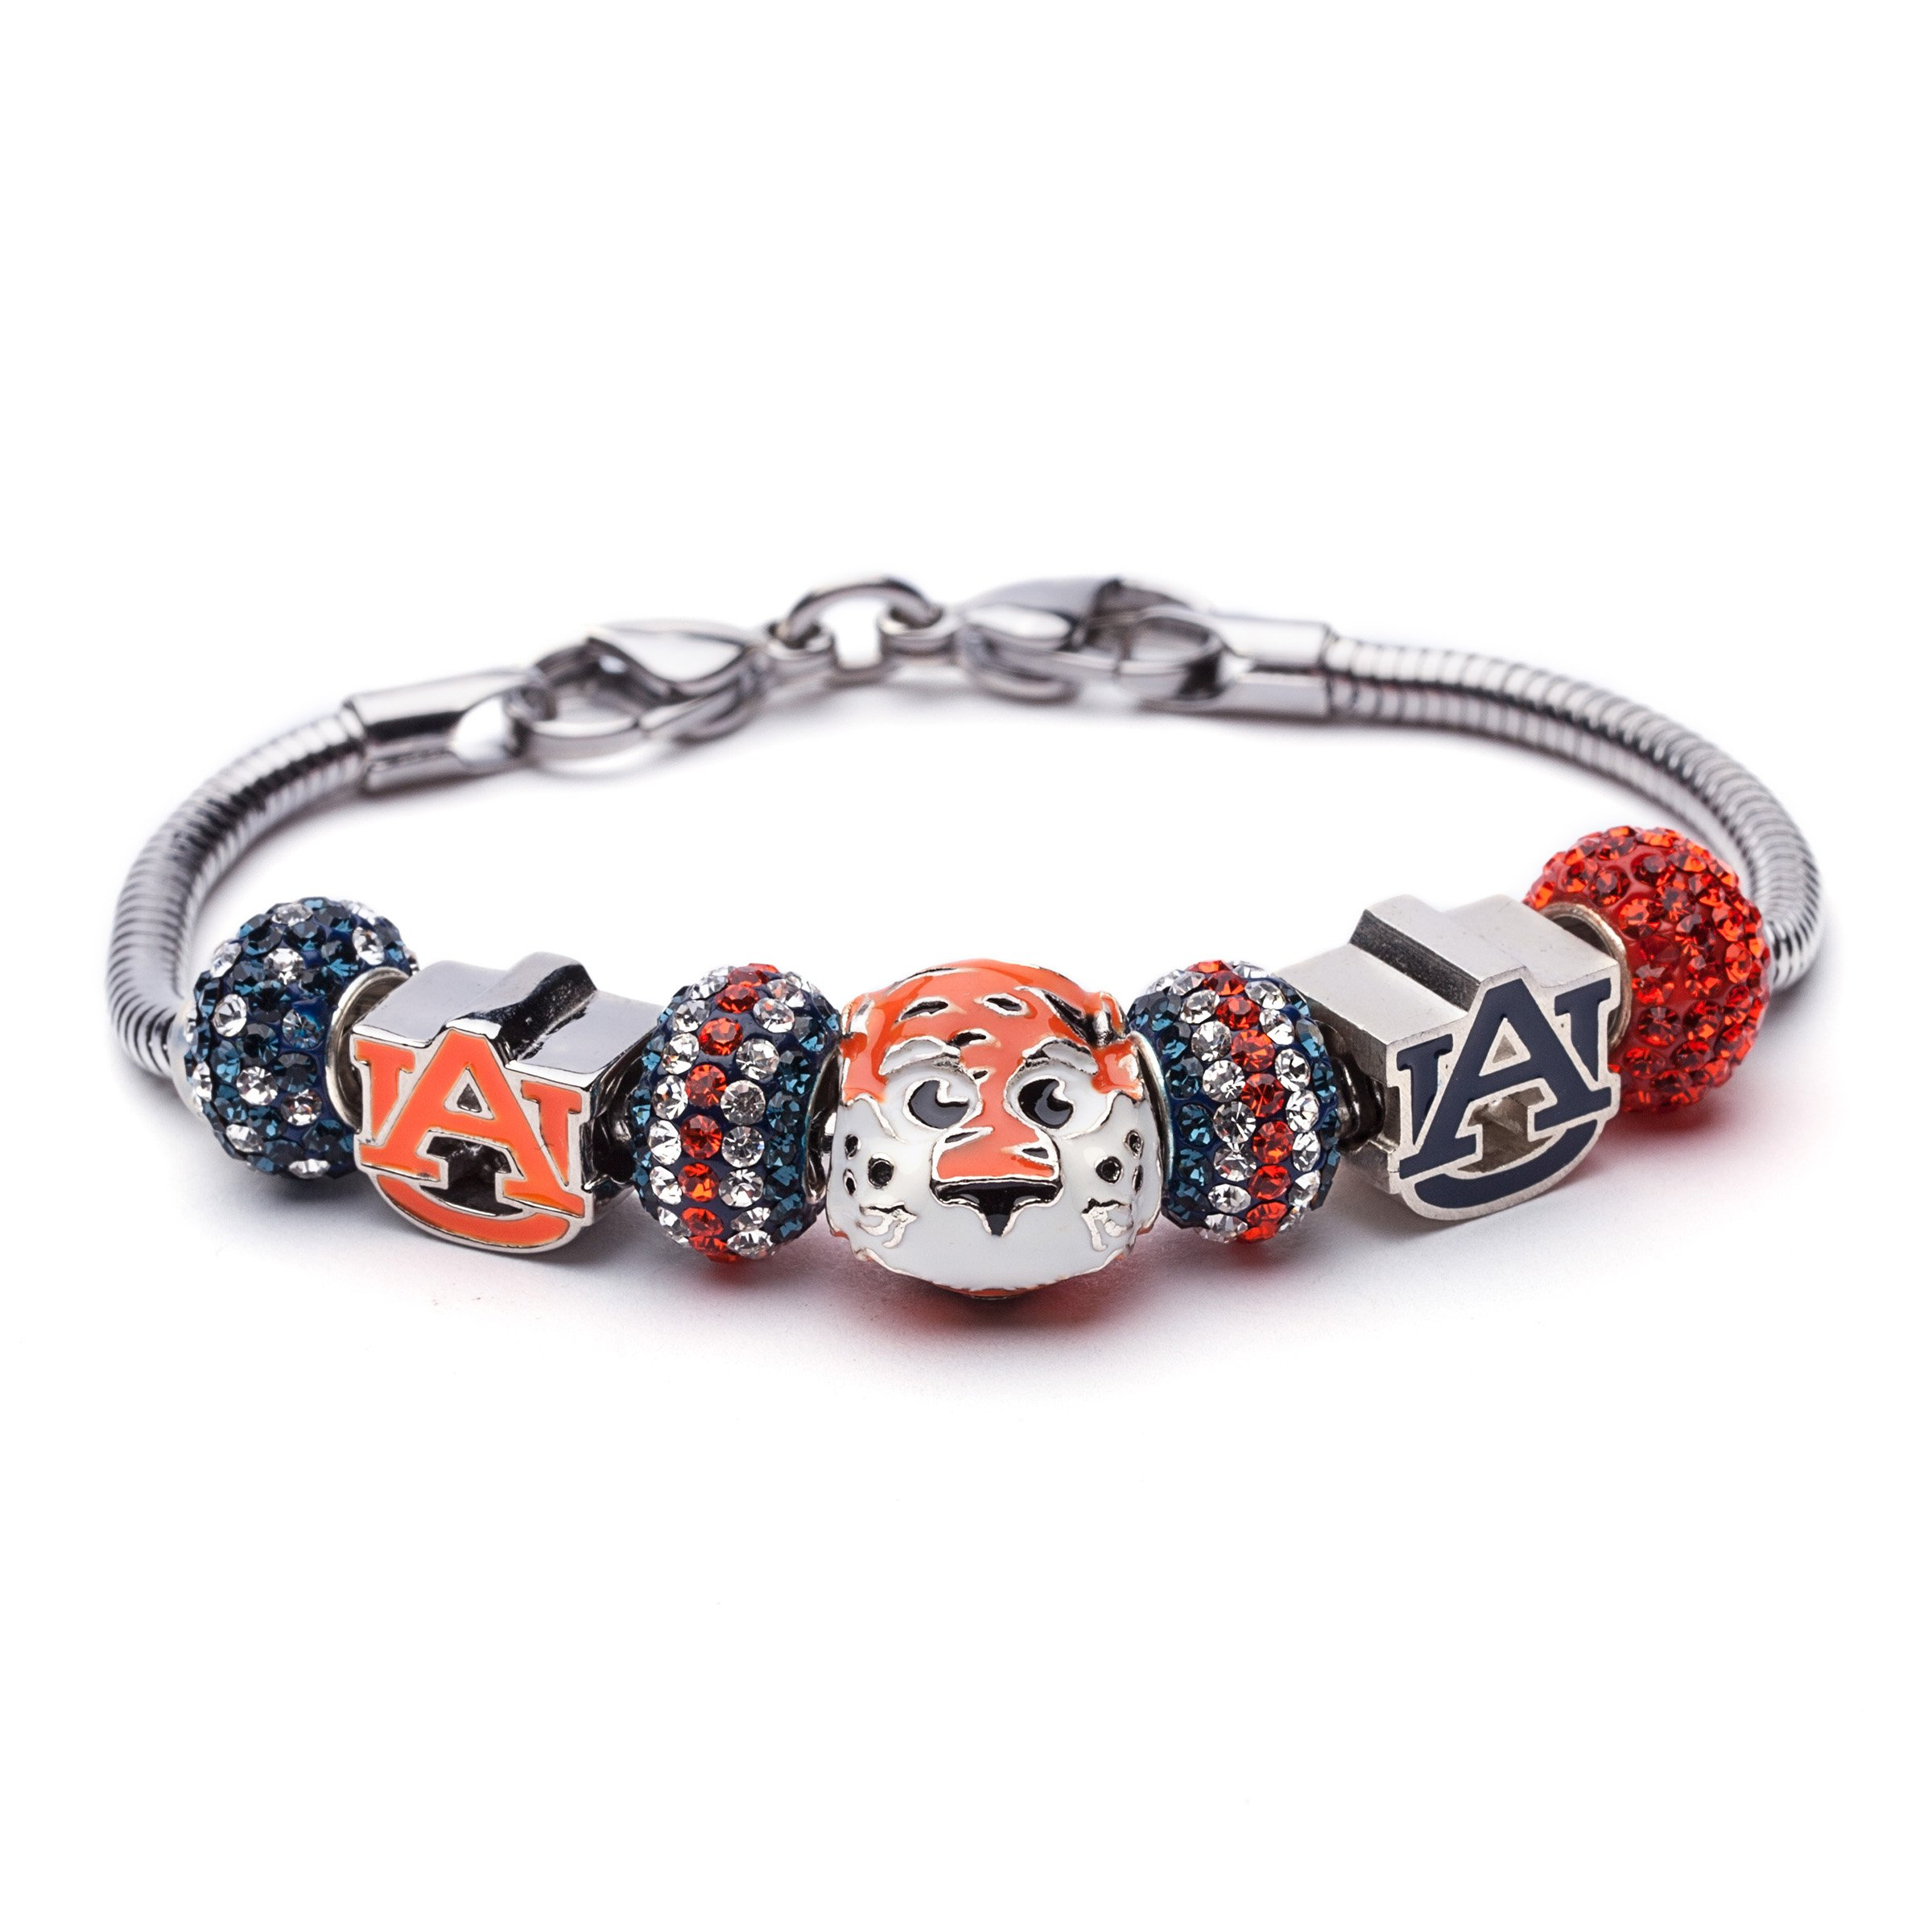 Auburn University Bracelet | AU Tigers Charm Bracelet with Block AU and Crystal Charms | Officially Licensed Auburn University Jewelry | AU Gifts | Auburn Tigers | AU Charms | Stainless Steel